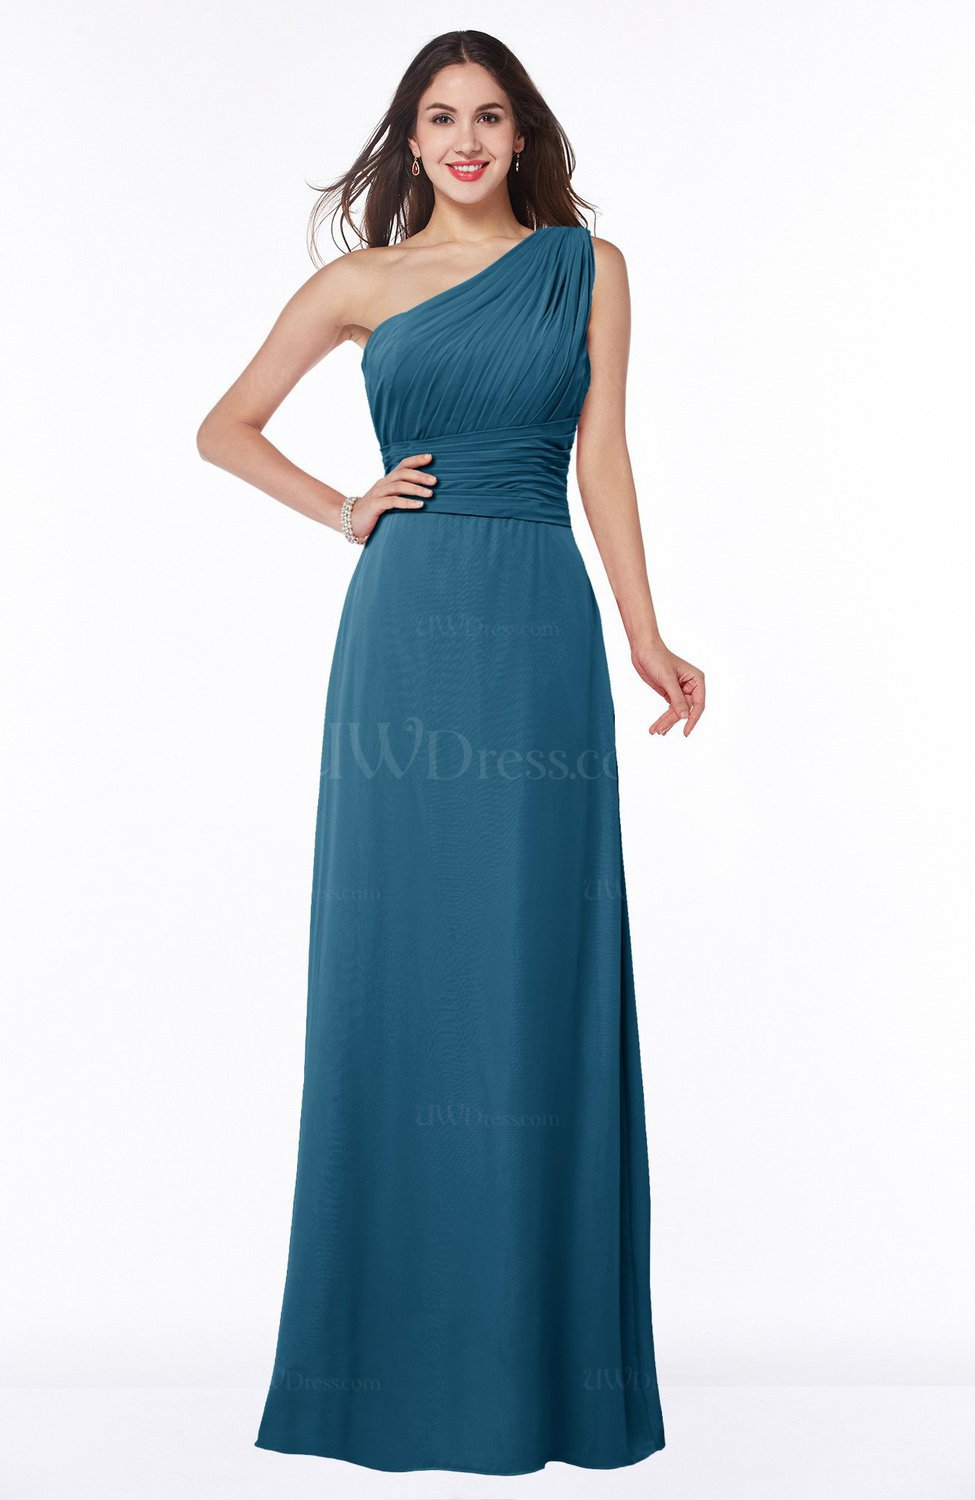 Plus size bridesmaid dresses uwdress moroccan blue elegant a line asymmetric neckline sleeveless floor length sash plus size bridesmaid dresses ombrellifo Gallery